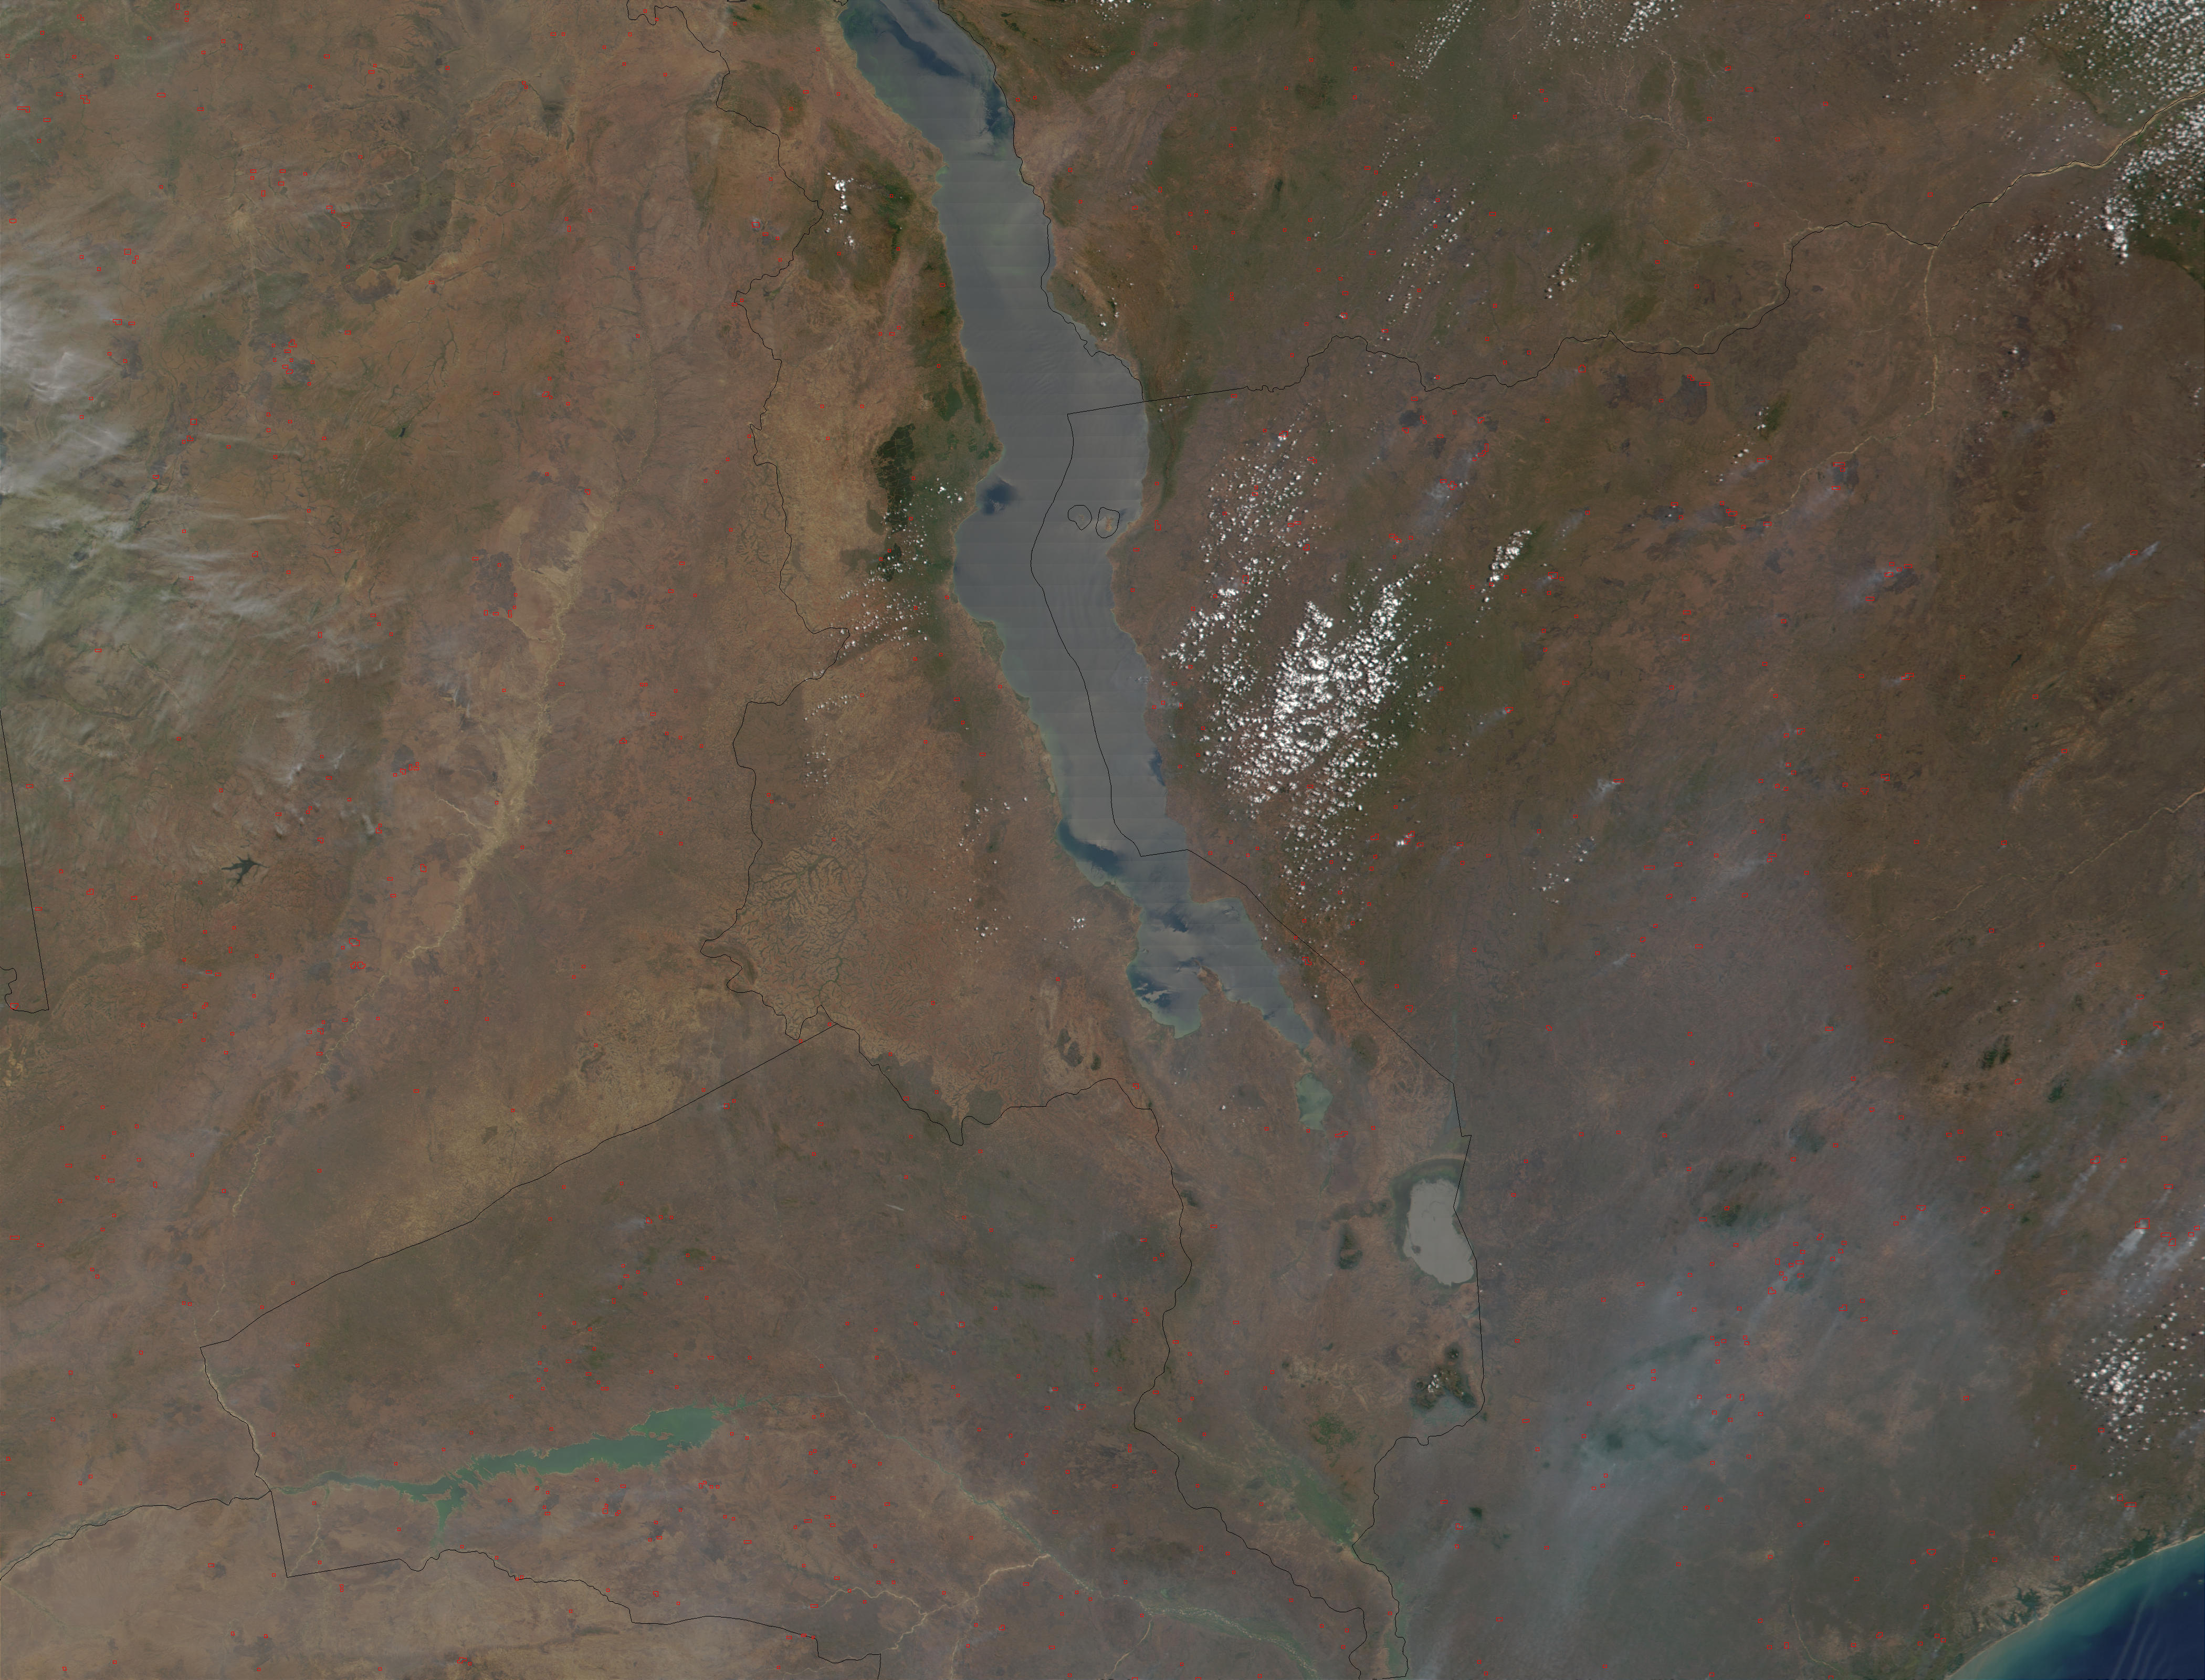 Fires around Malawi Lake, in Zambia, Malawi, Tanzania, and Mozambique - related image preview